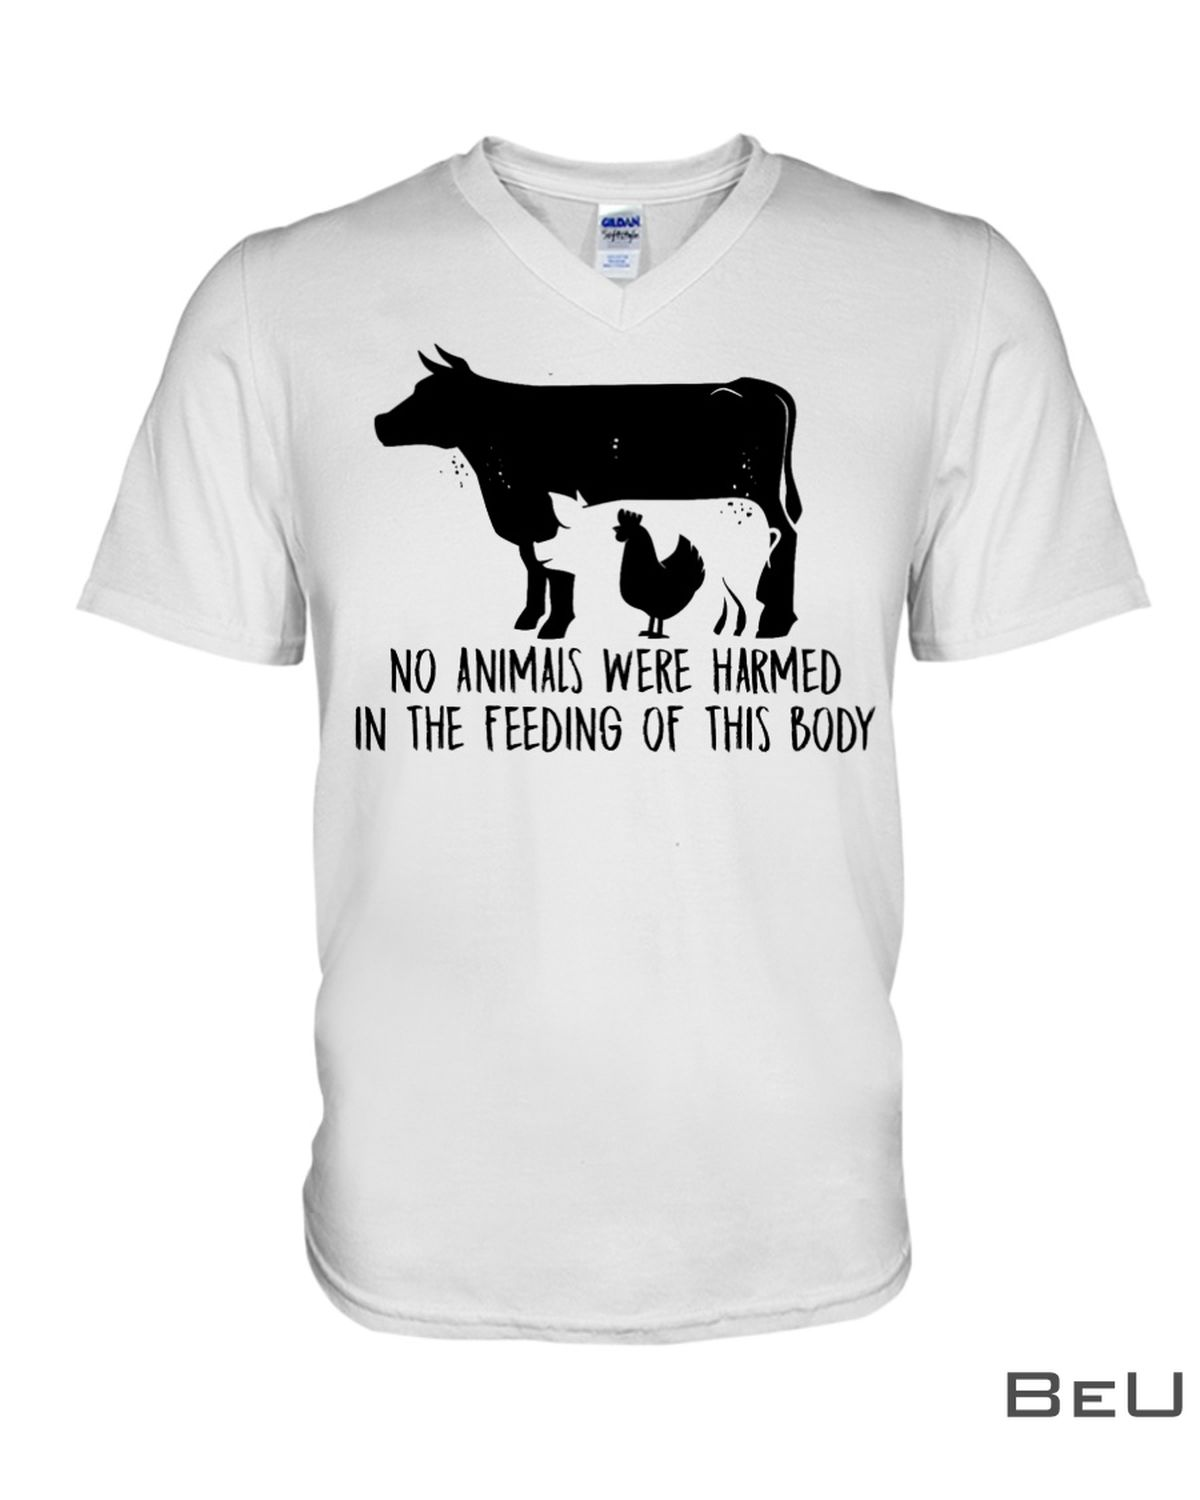 No Animals Were Harmed In The Feeding Of This Body shirtz